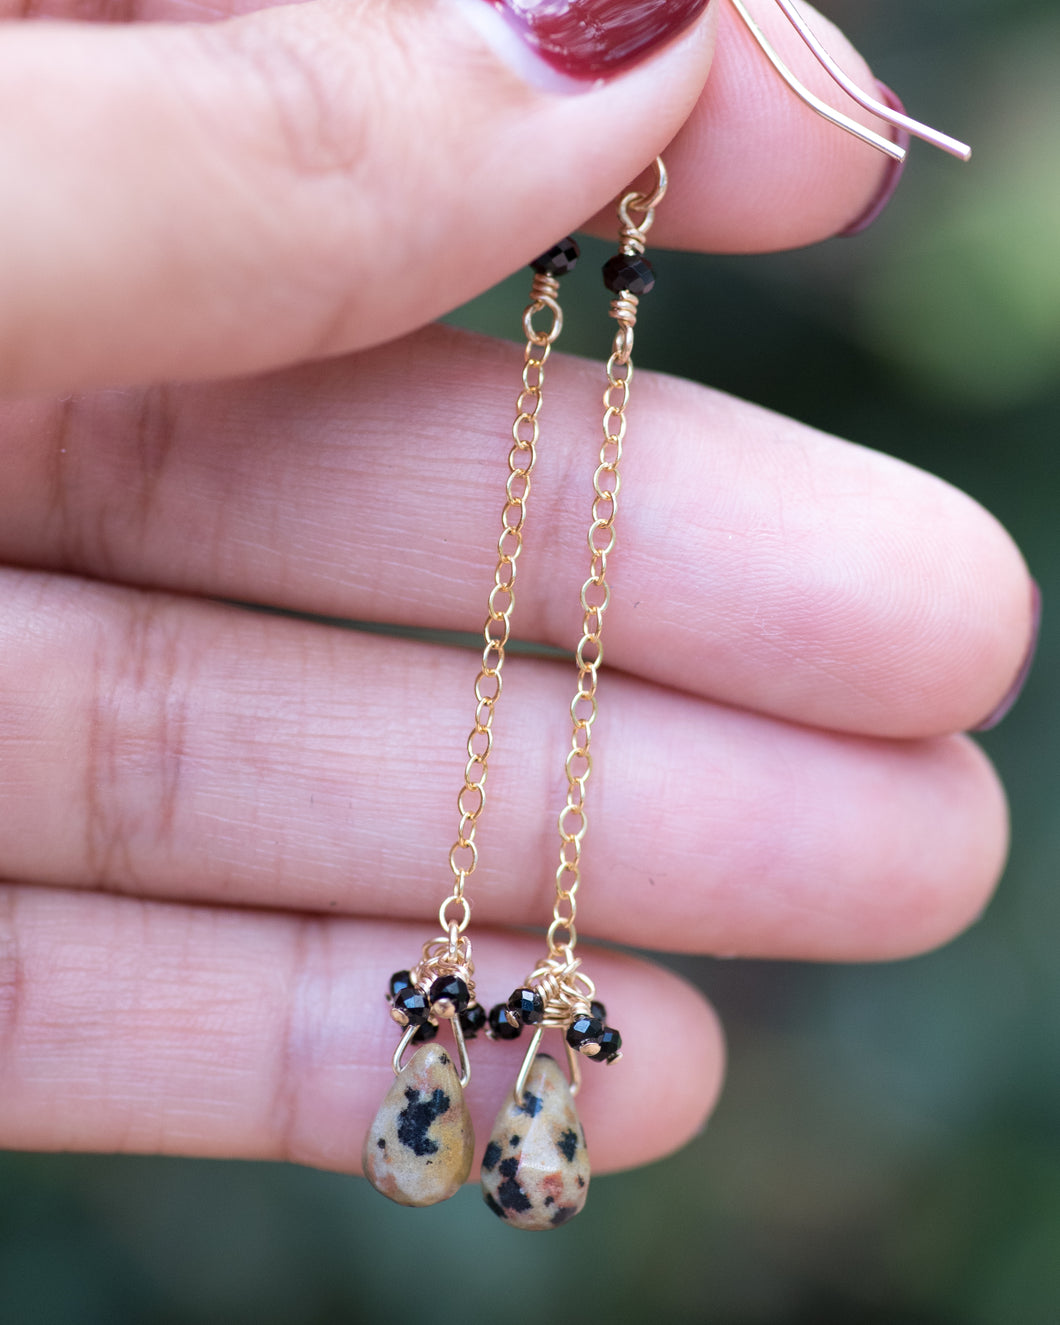 Minimal Dalmatian Jasper Dangle Earrings - Vida Jewelry Designs